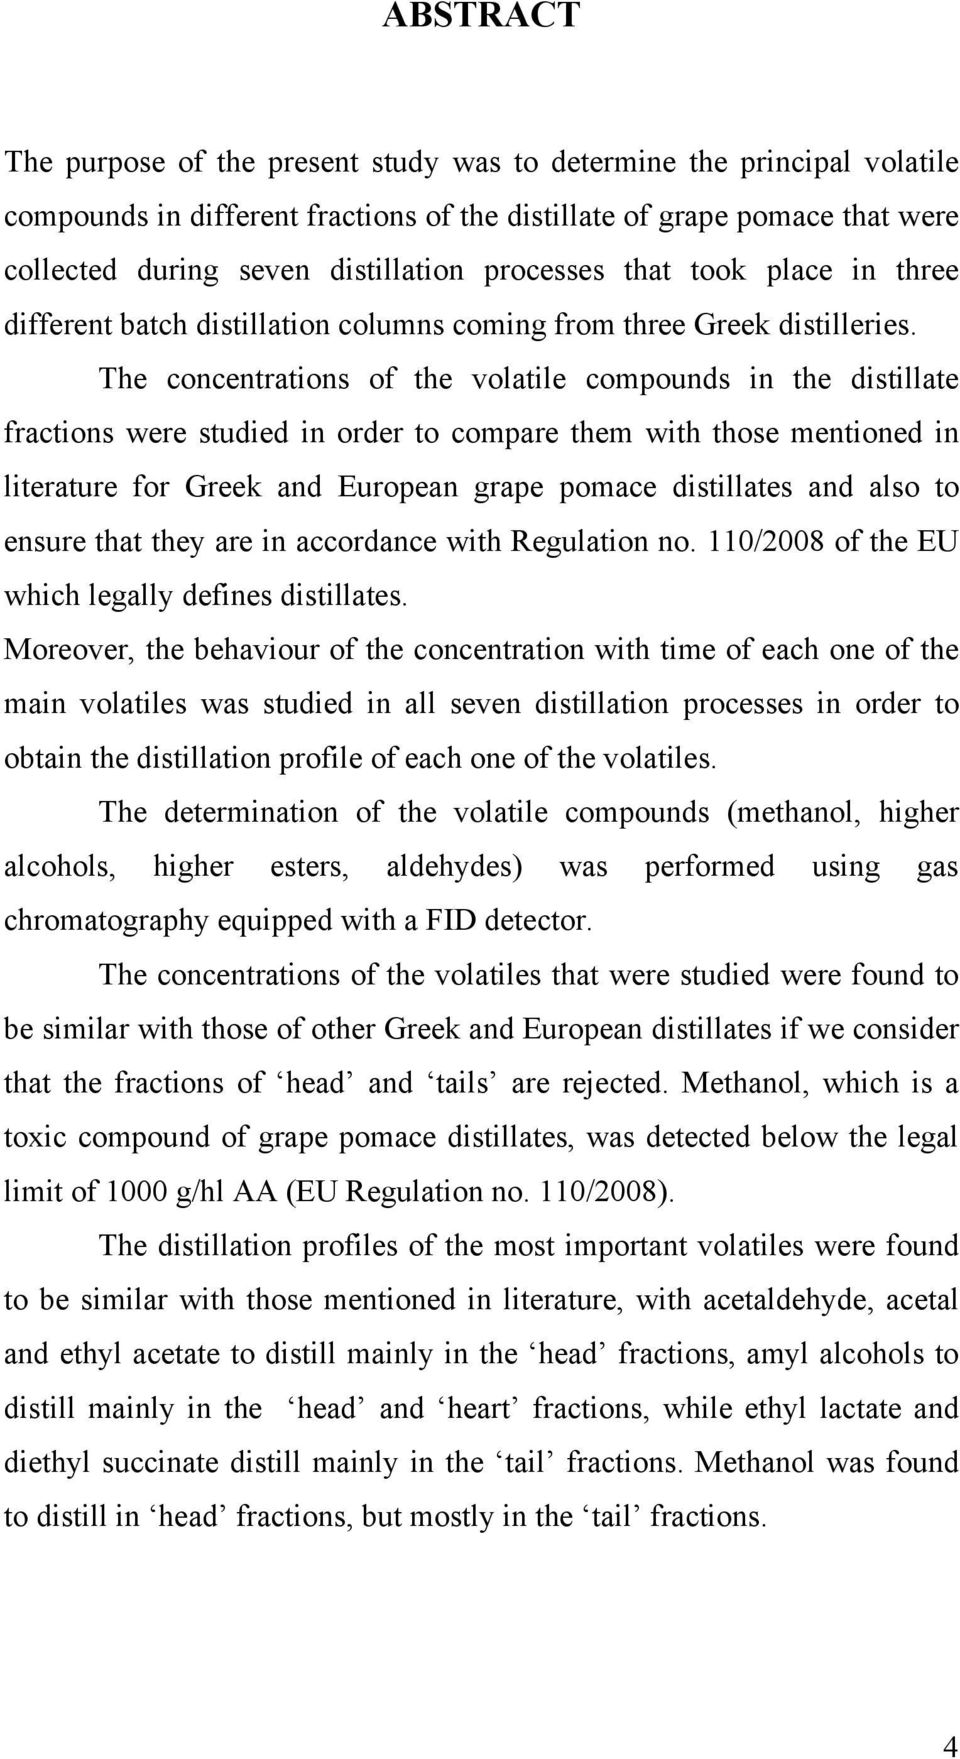 The concentrations of the volatile compounds in the distillate fractions were studied in order to compare them with those mentioned in literature for Greek and European grape pomace distillates and